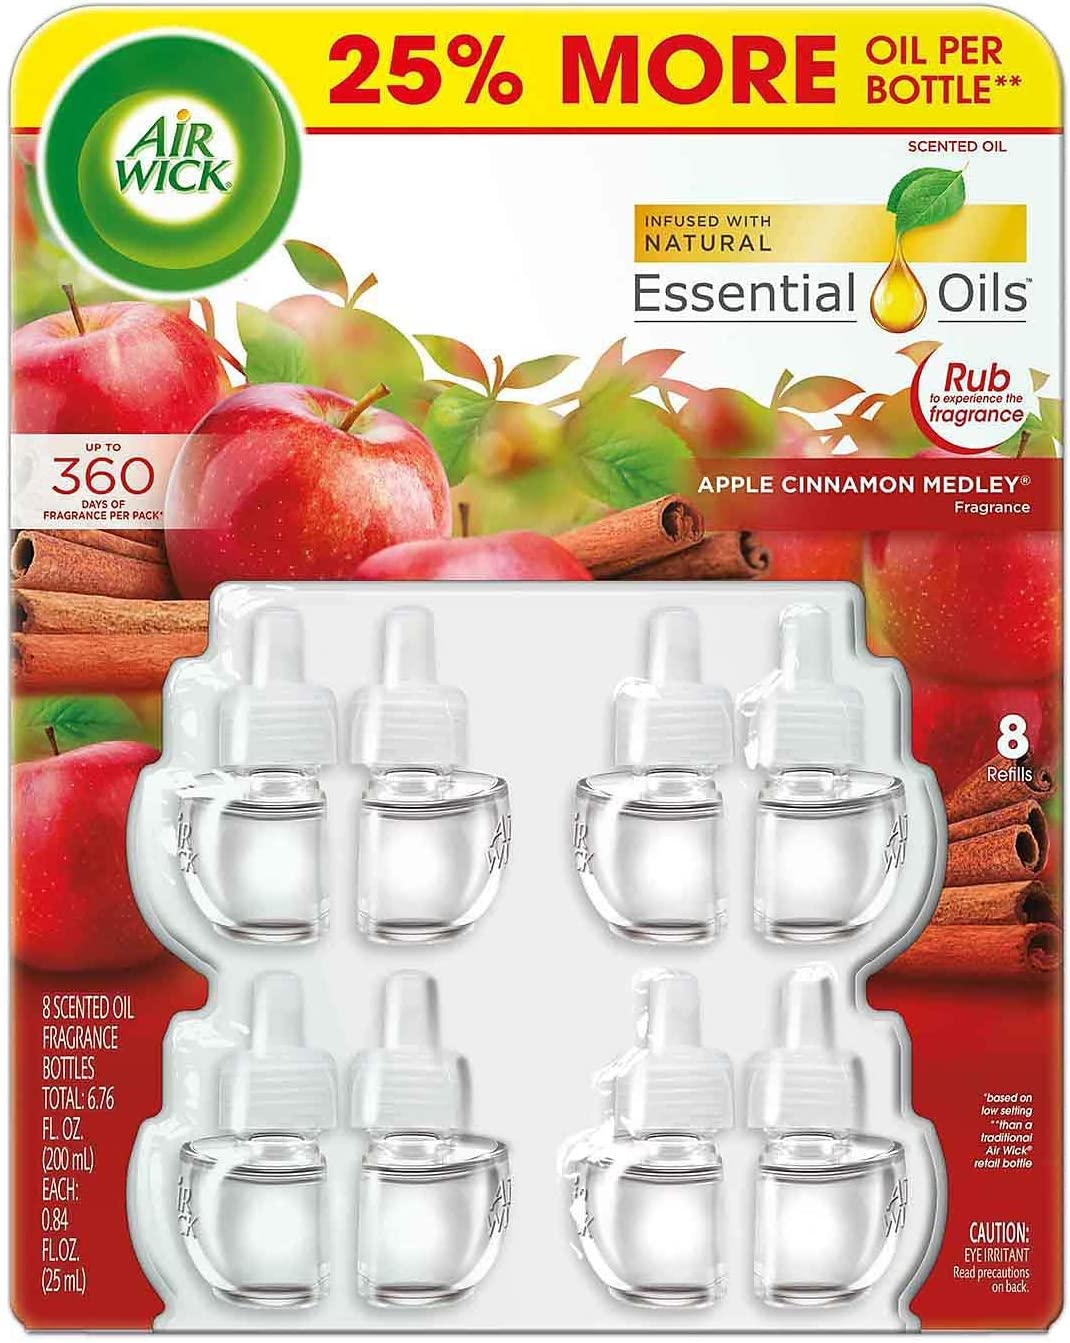 Air Wick Apple Cinnamon Medley Essential Scented Oils, 8 Bottles